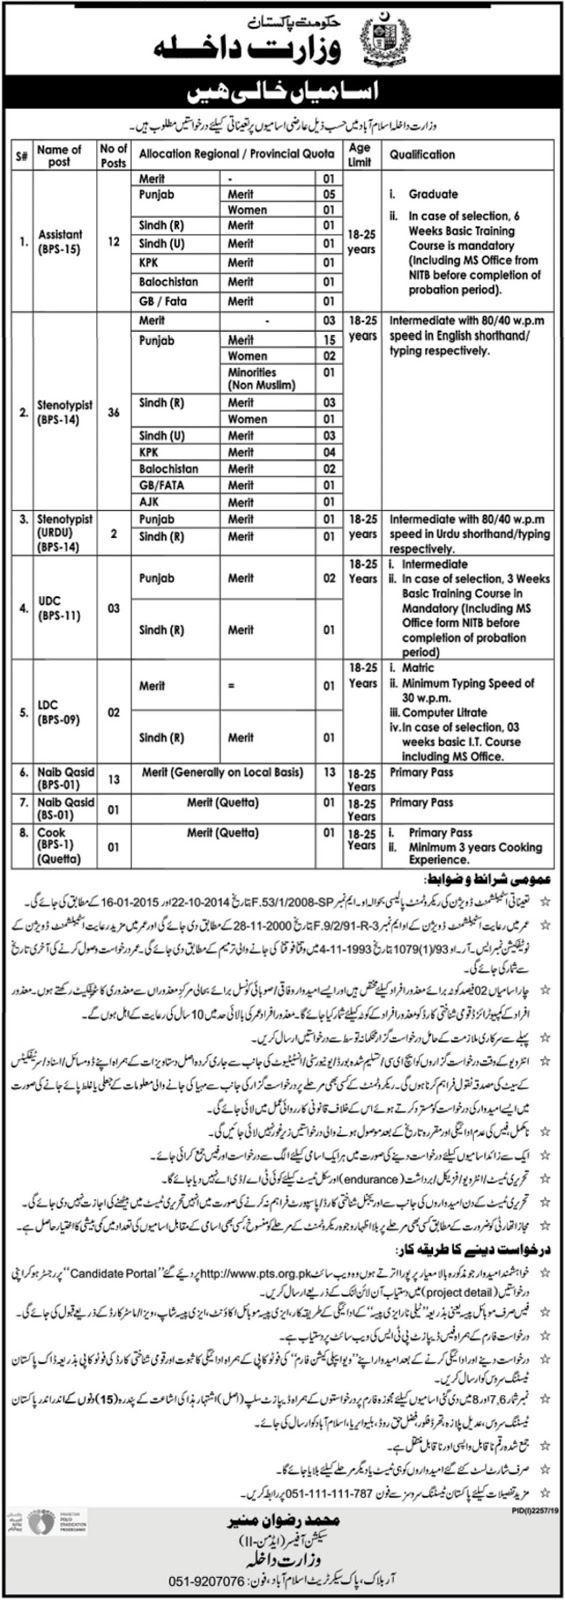 Ministry of Interior Jobs 2019 Apply Via PTS Testing Service